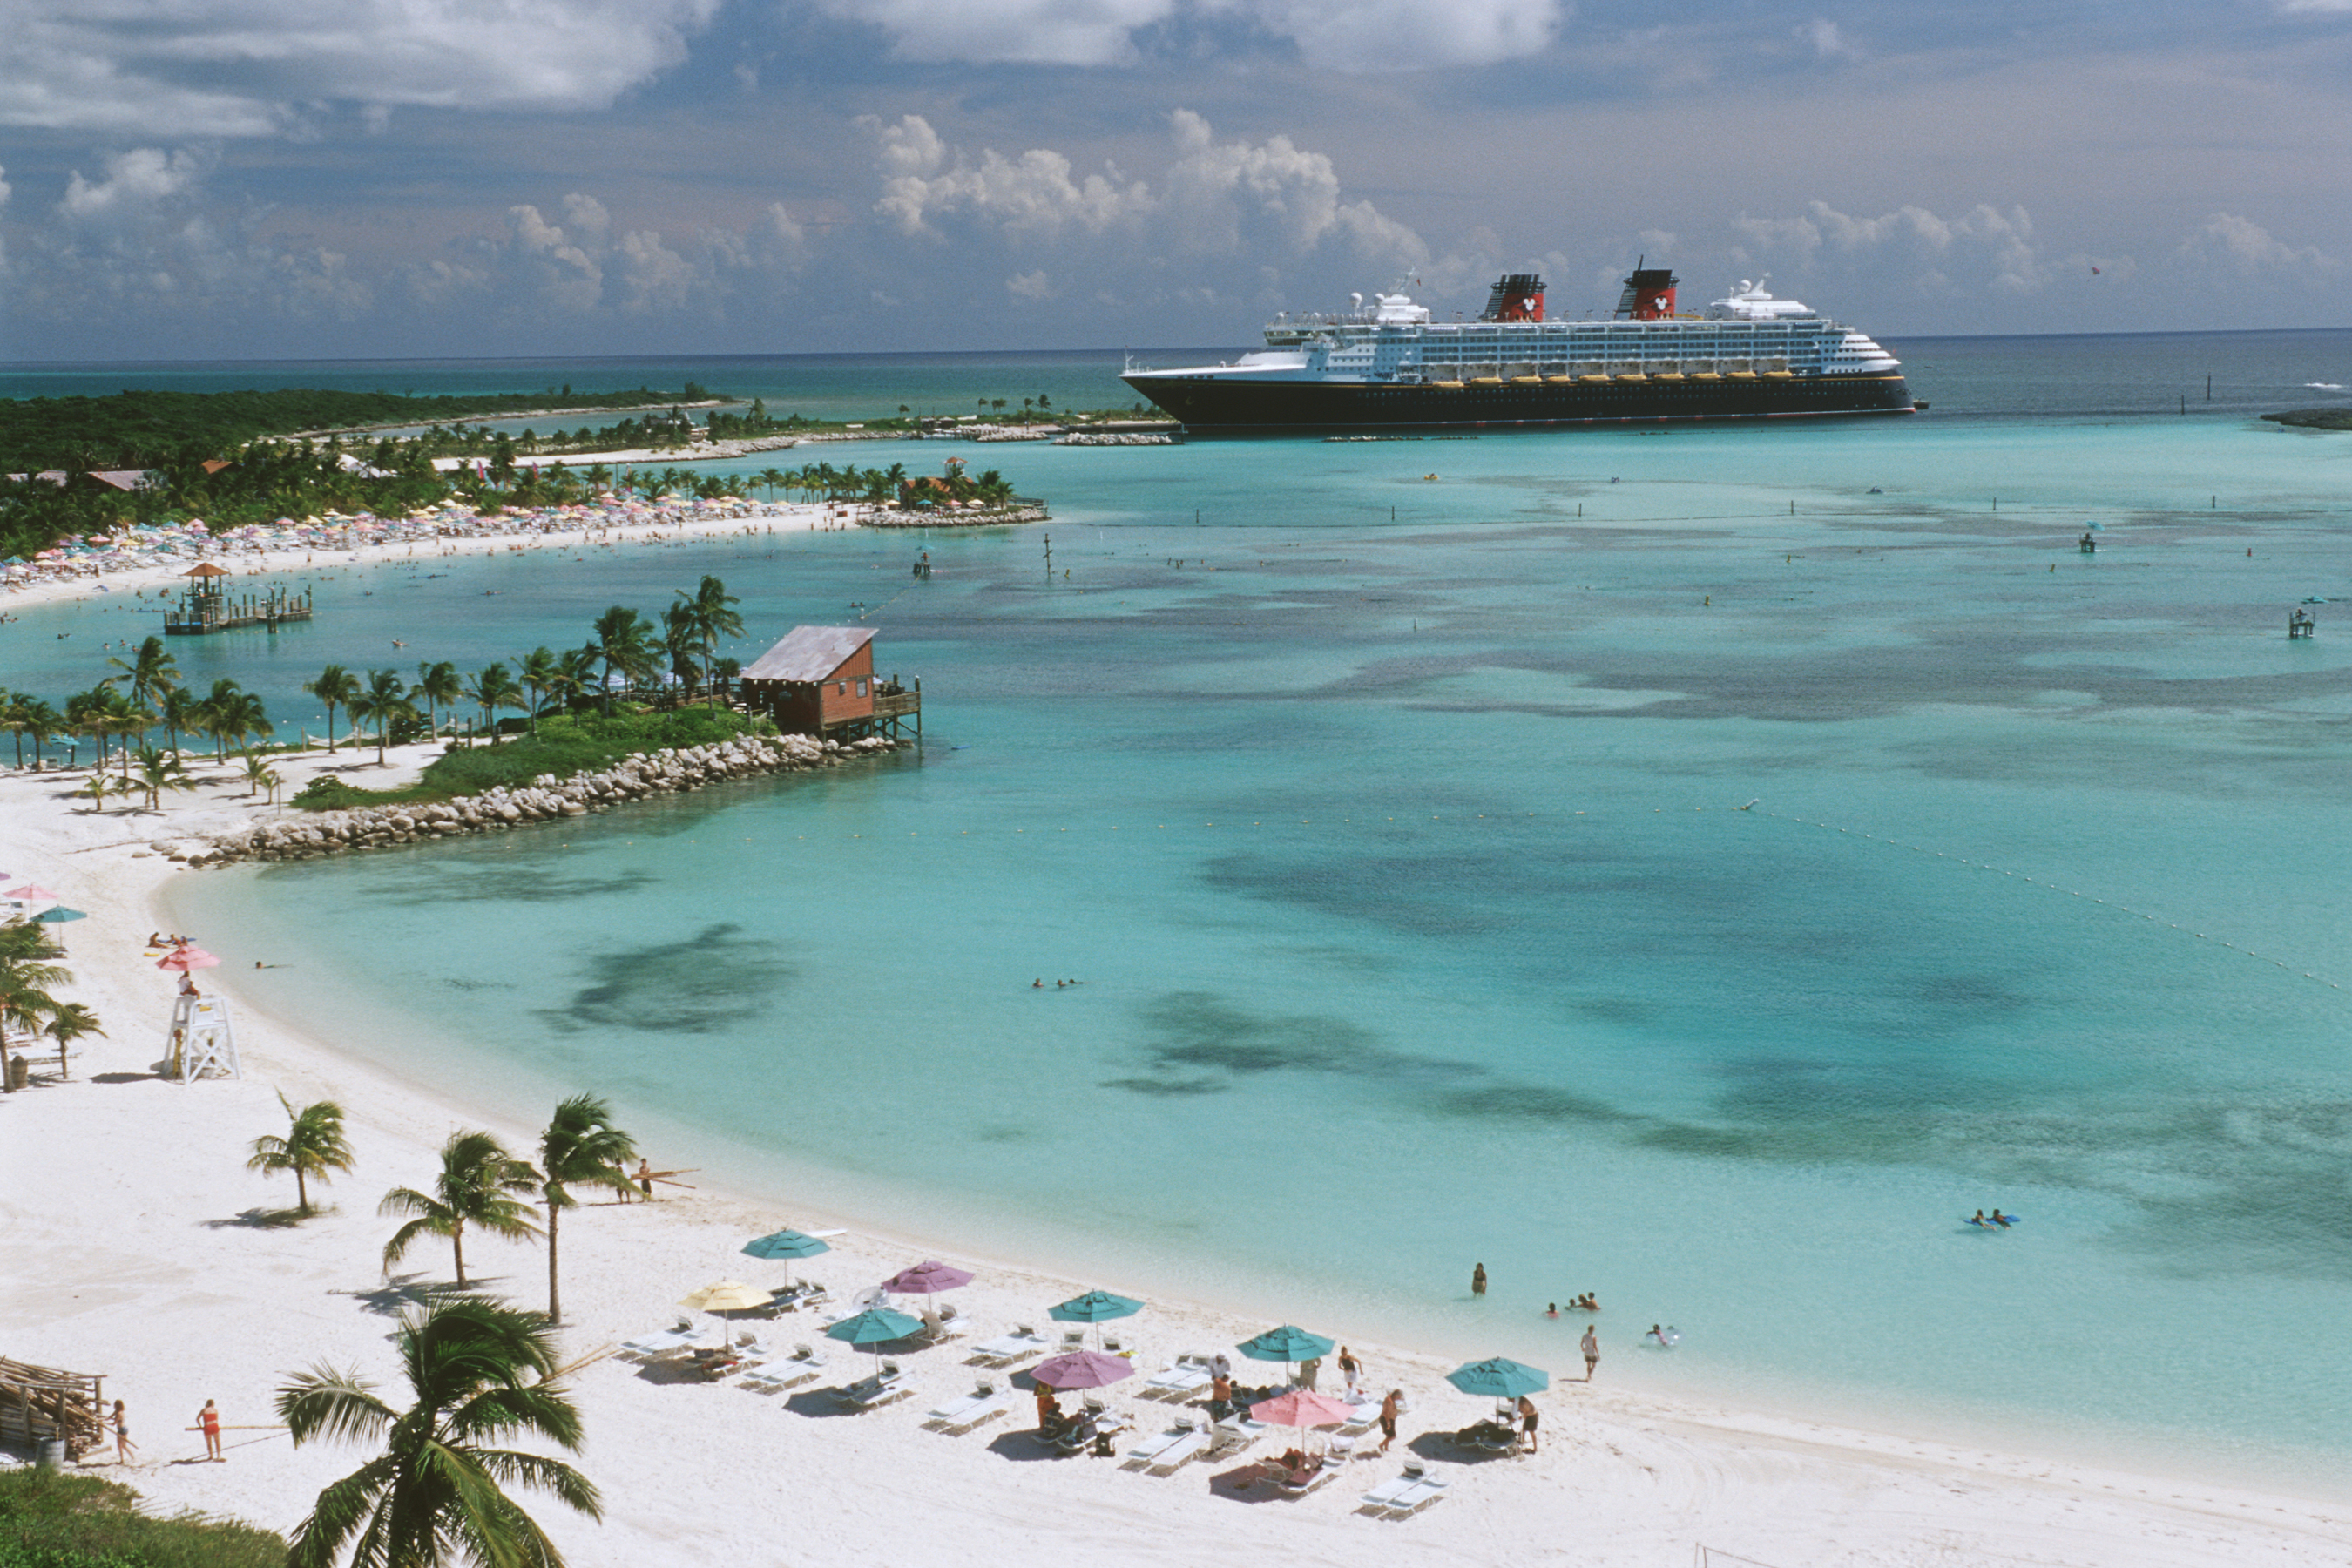 map of catalina island with Disney Wonder At Castaway Cay 1 on Davenport Pier in addition Key Largo Snorkeling further Costa Rica Beach And Volcano Green Season Package besides Maps further Crescent Beach On Catalina Island.